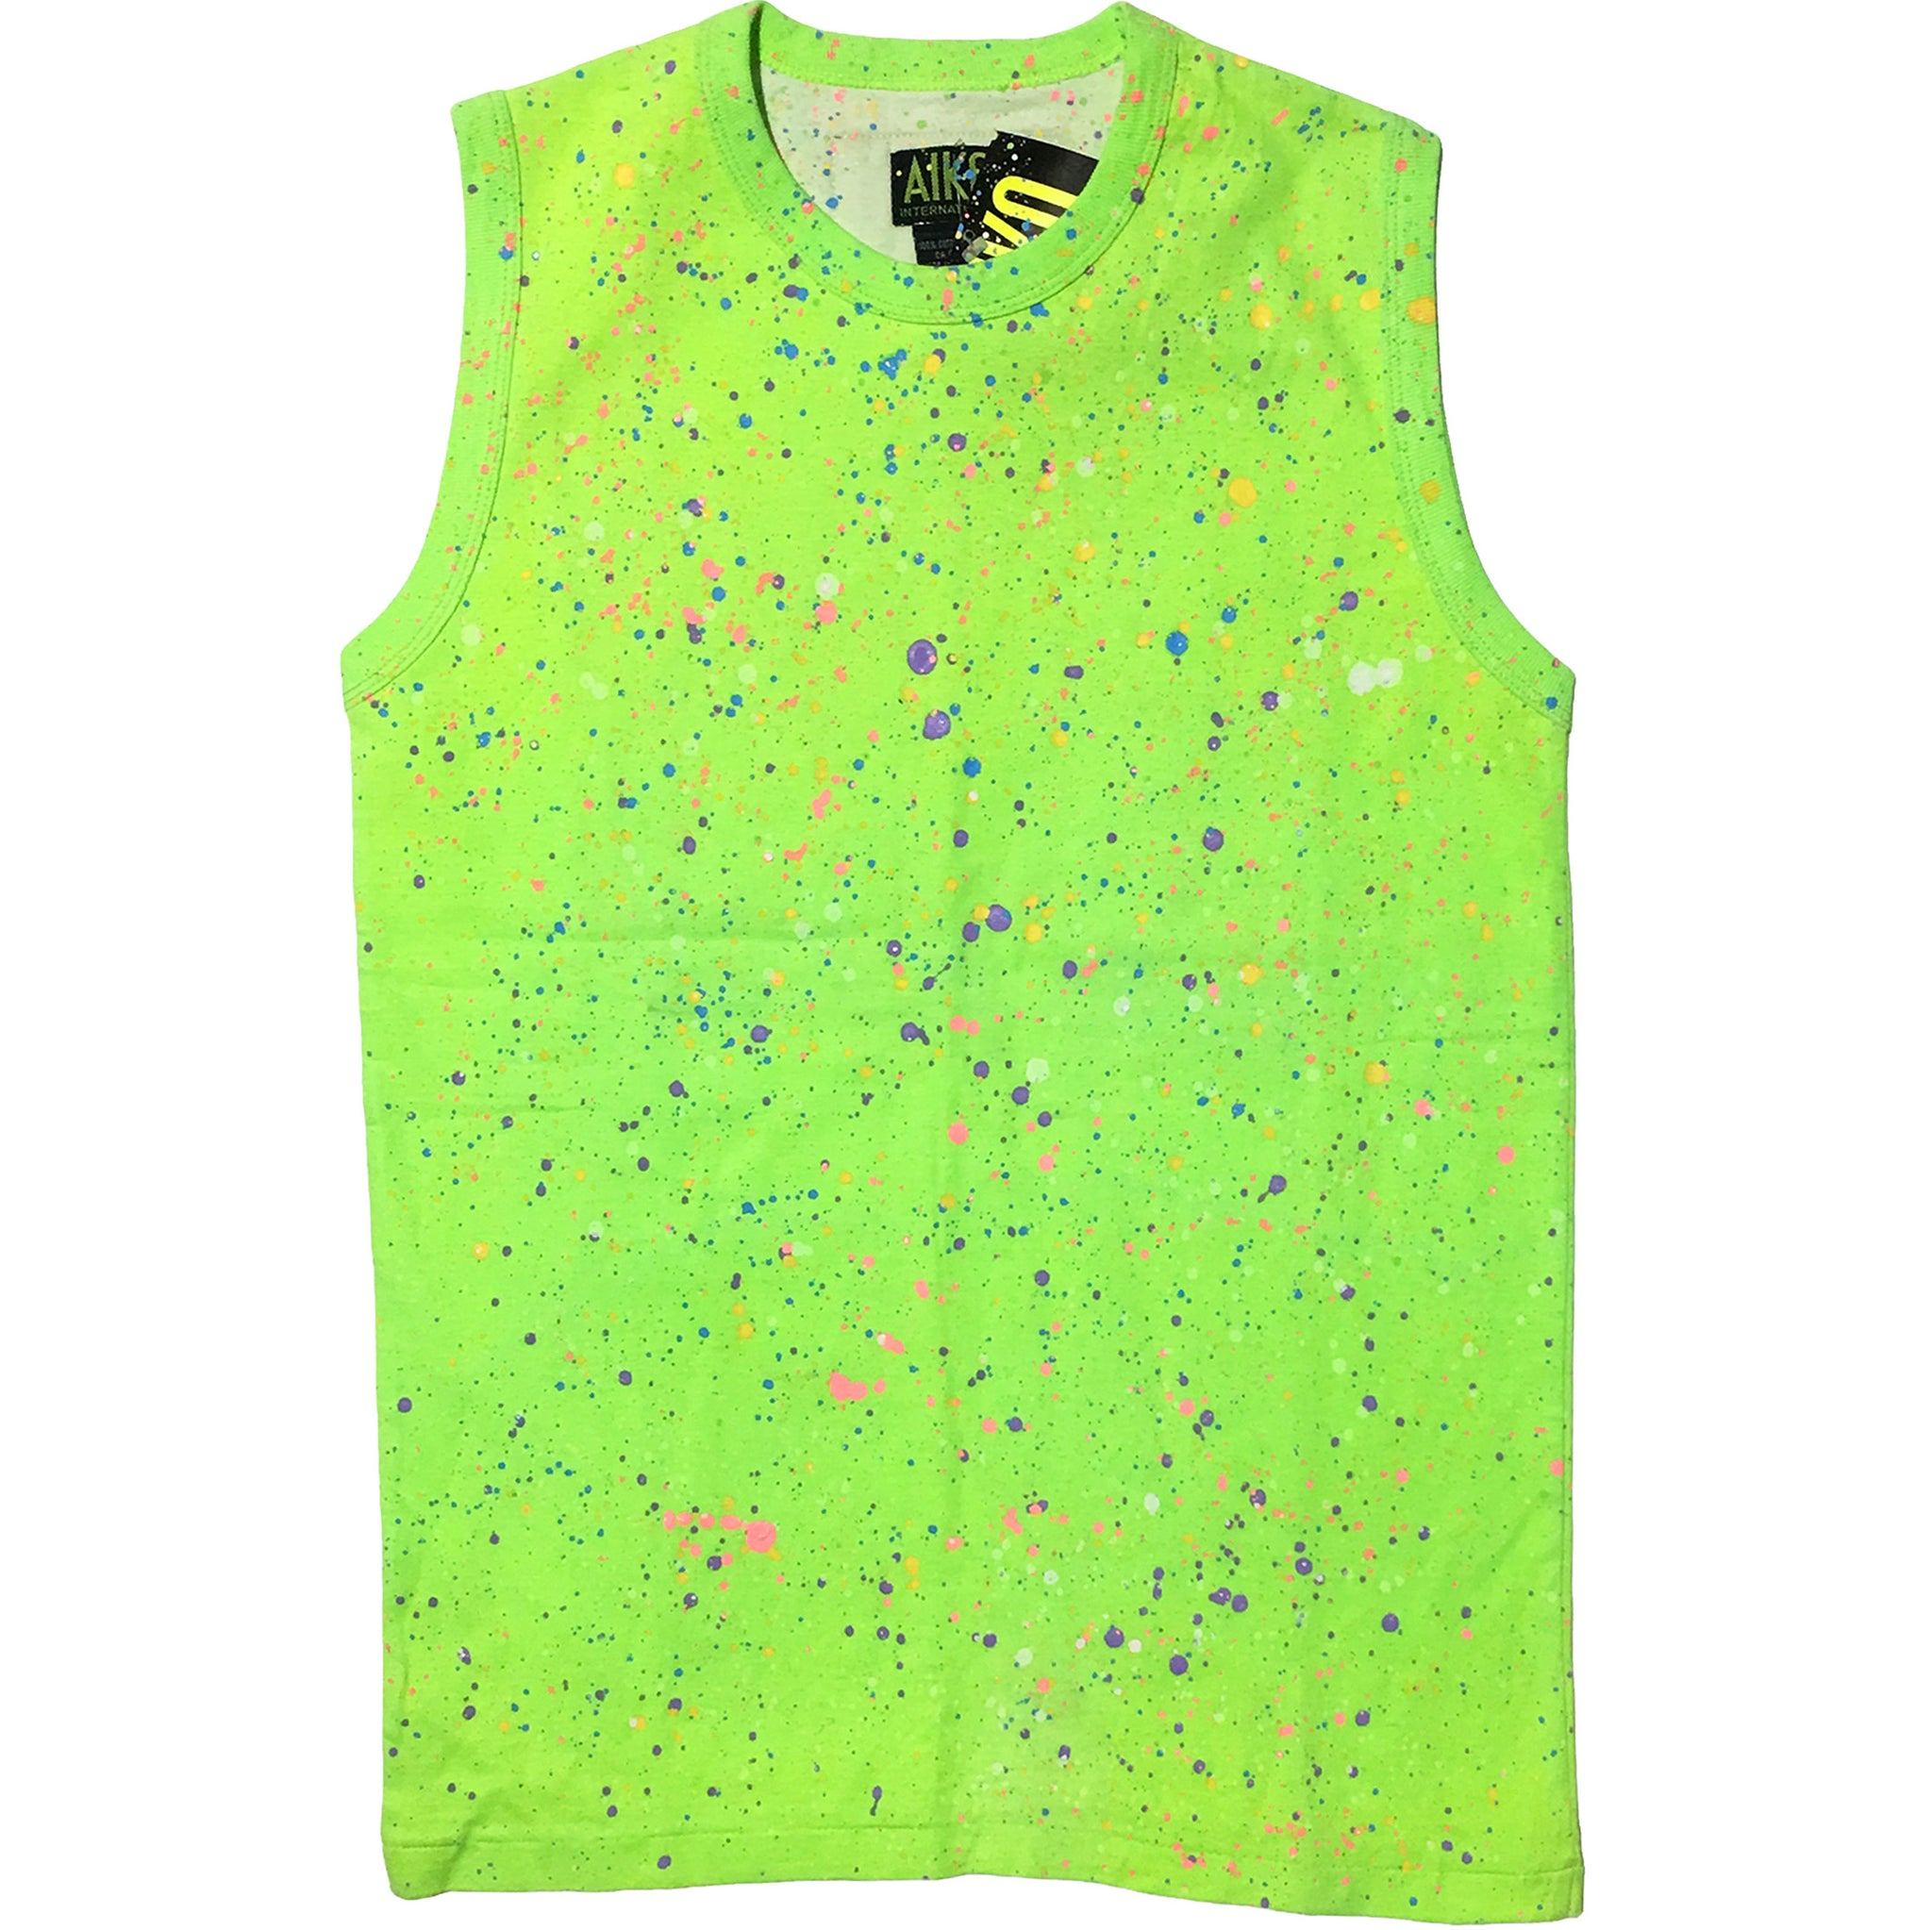 Aiko Sports Neon Green Splattered Tank Top